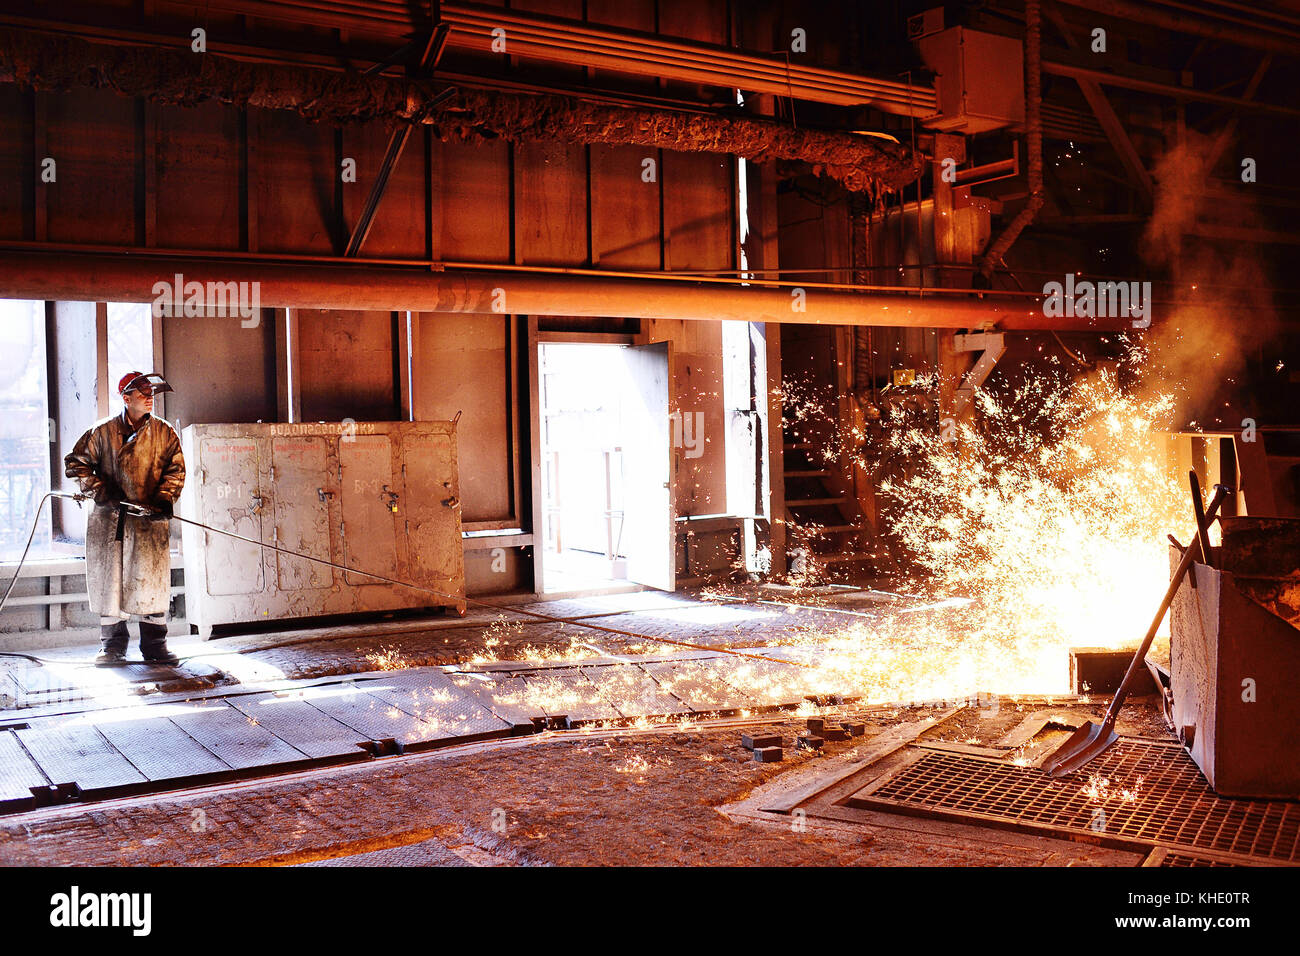 Blast furnace at a metallurgical plant - Stock Image